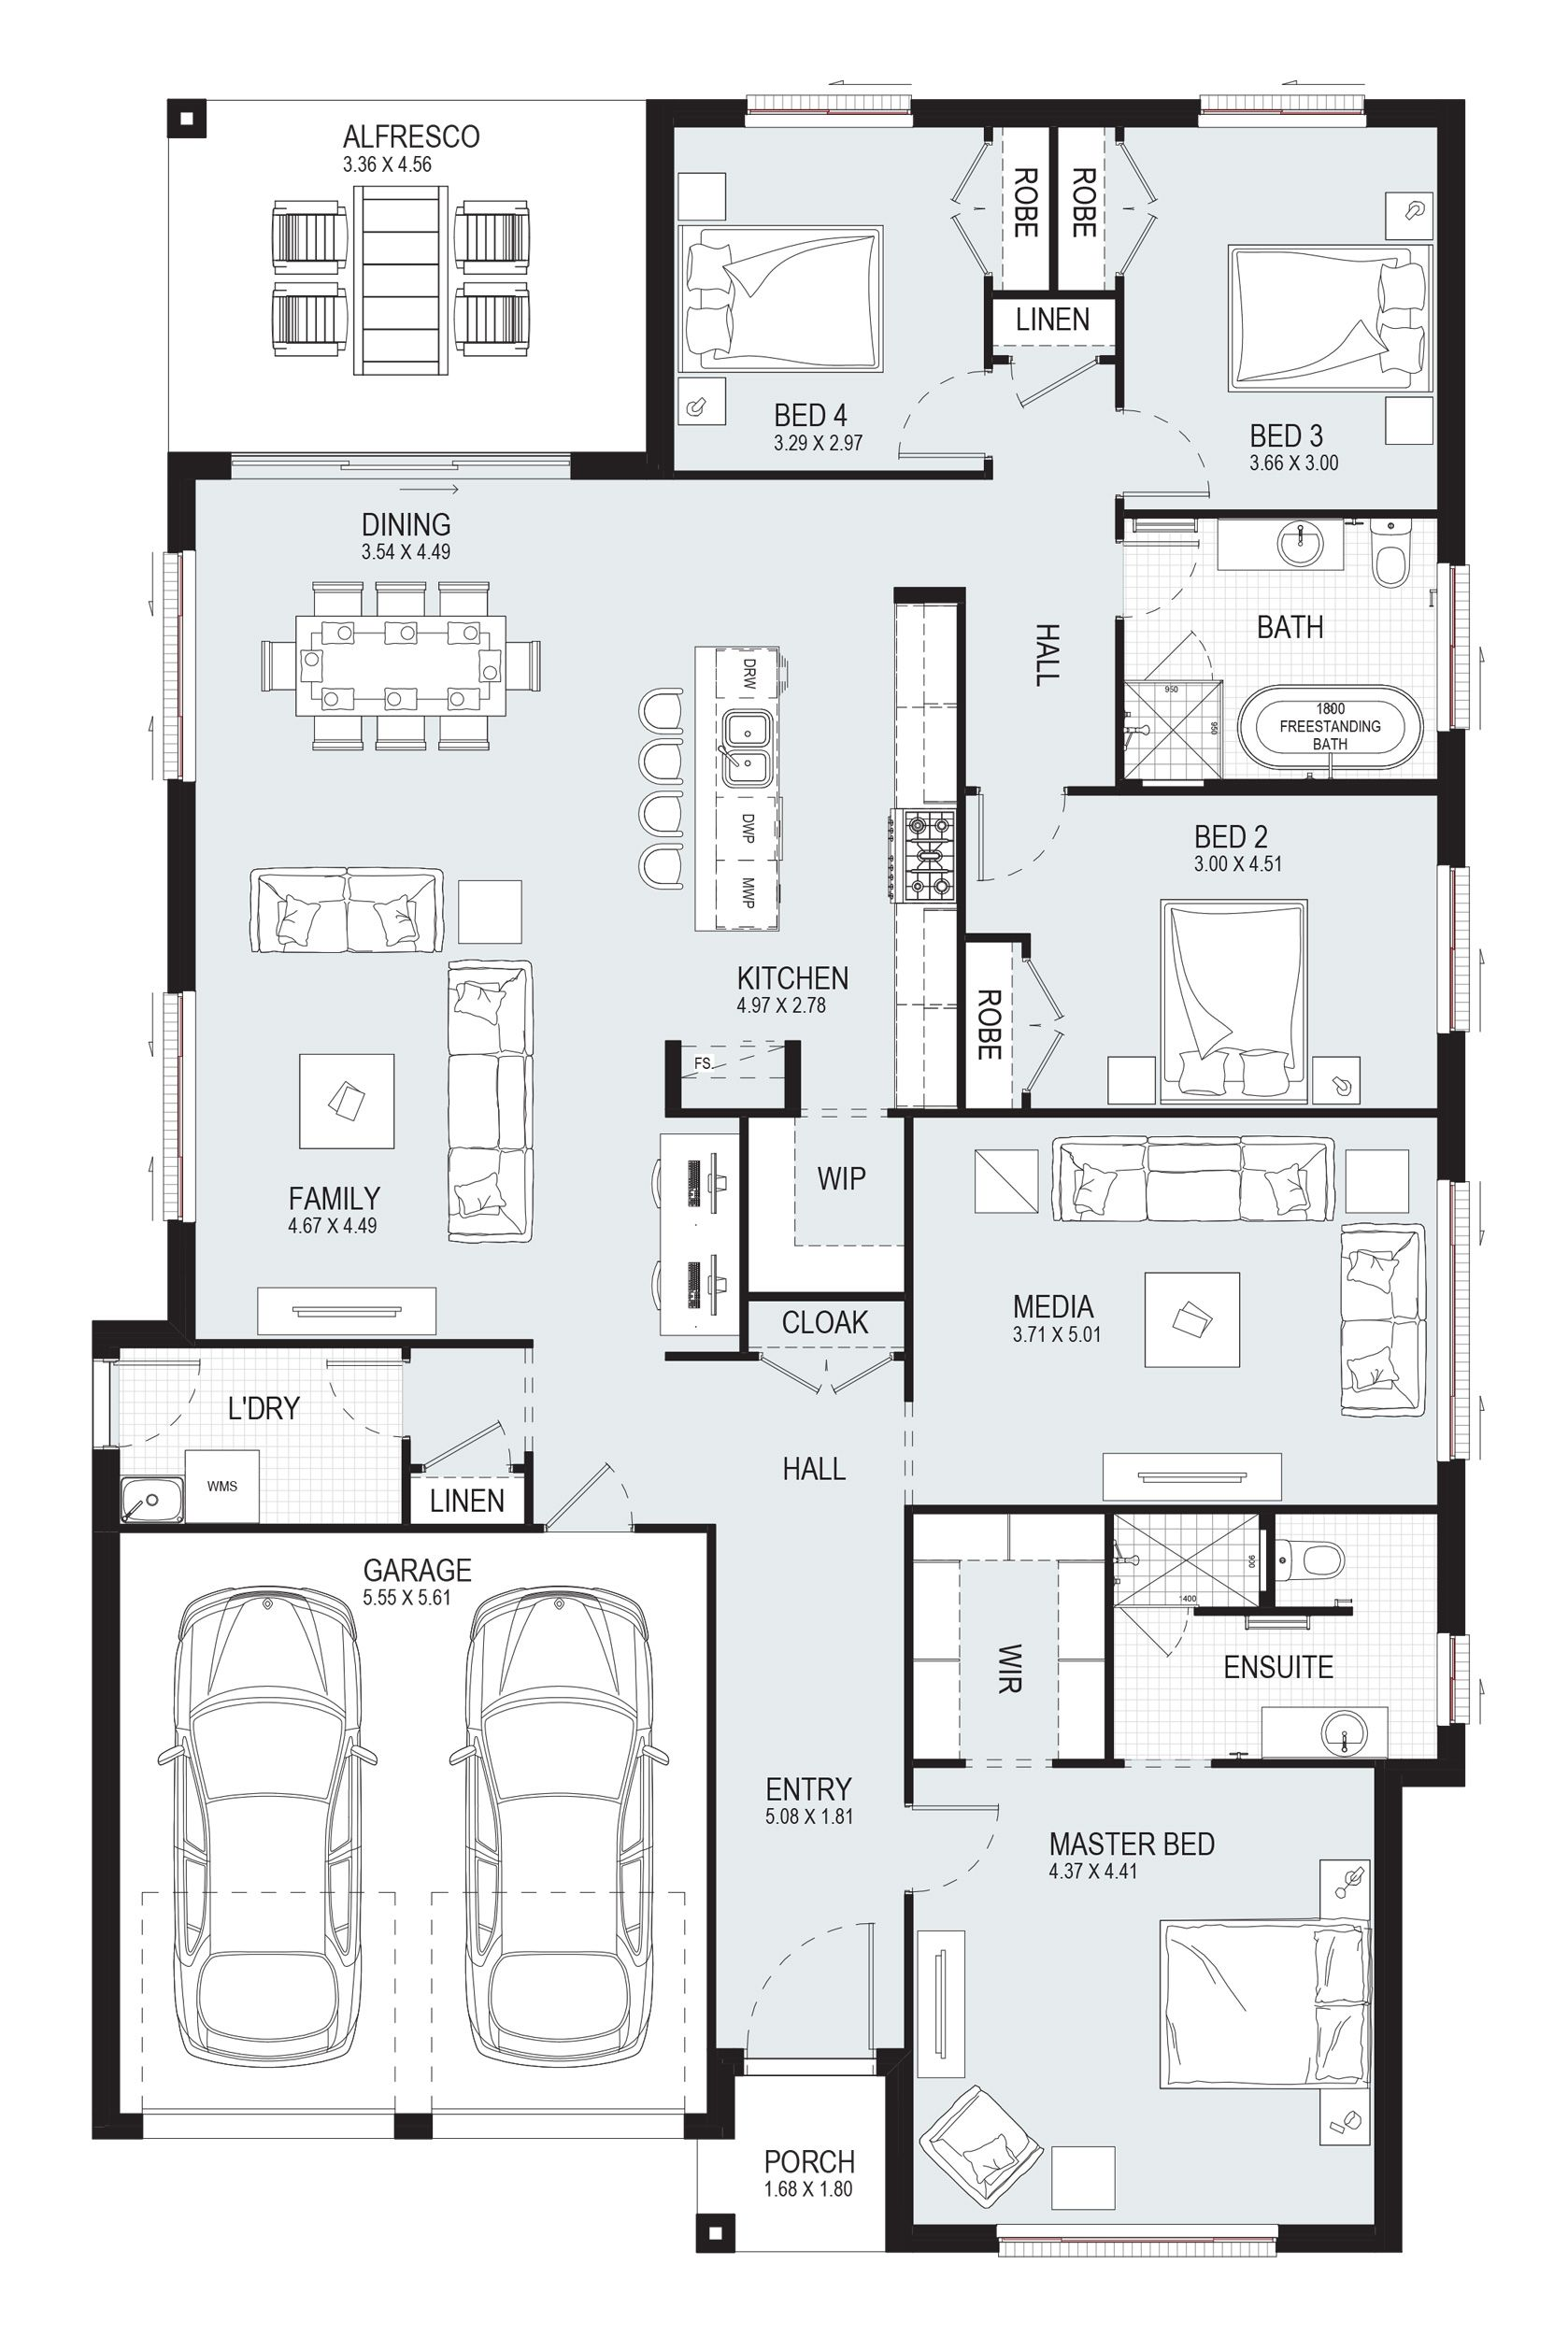 Opal 27 Single Level Floorplan By Kurmond Homes New Home Builders Sydney Nsw In 2020 House Layout Plans New House Plans Home Design Floor Plans